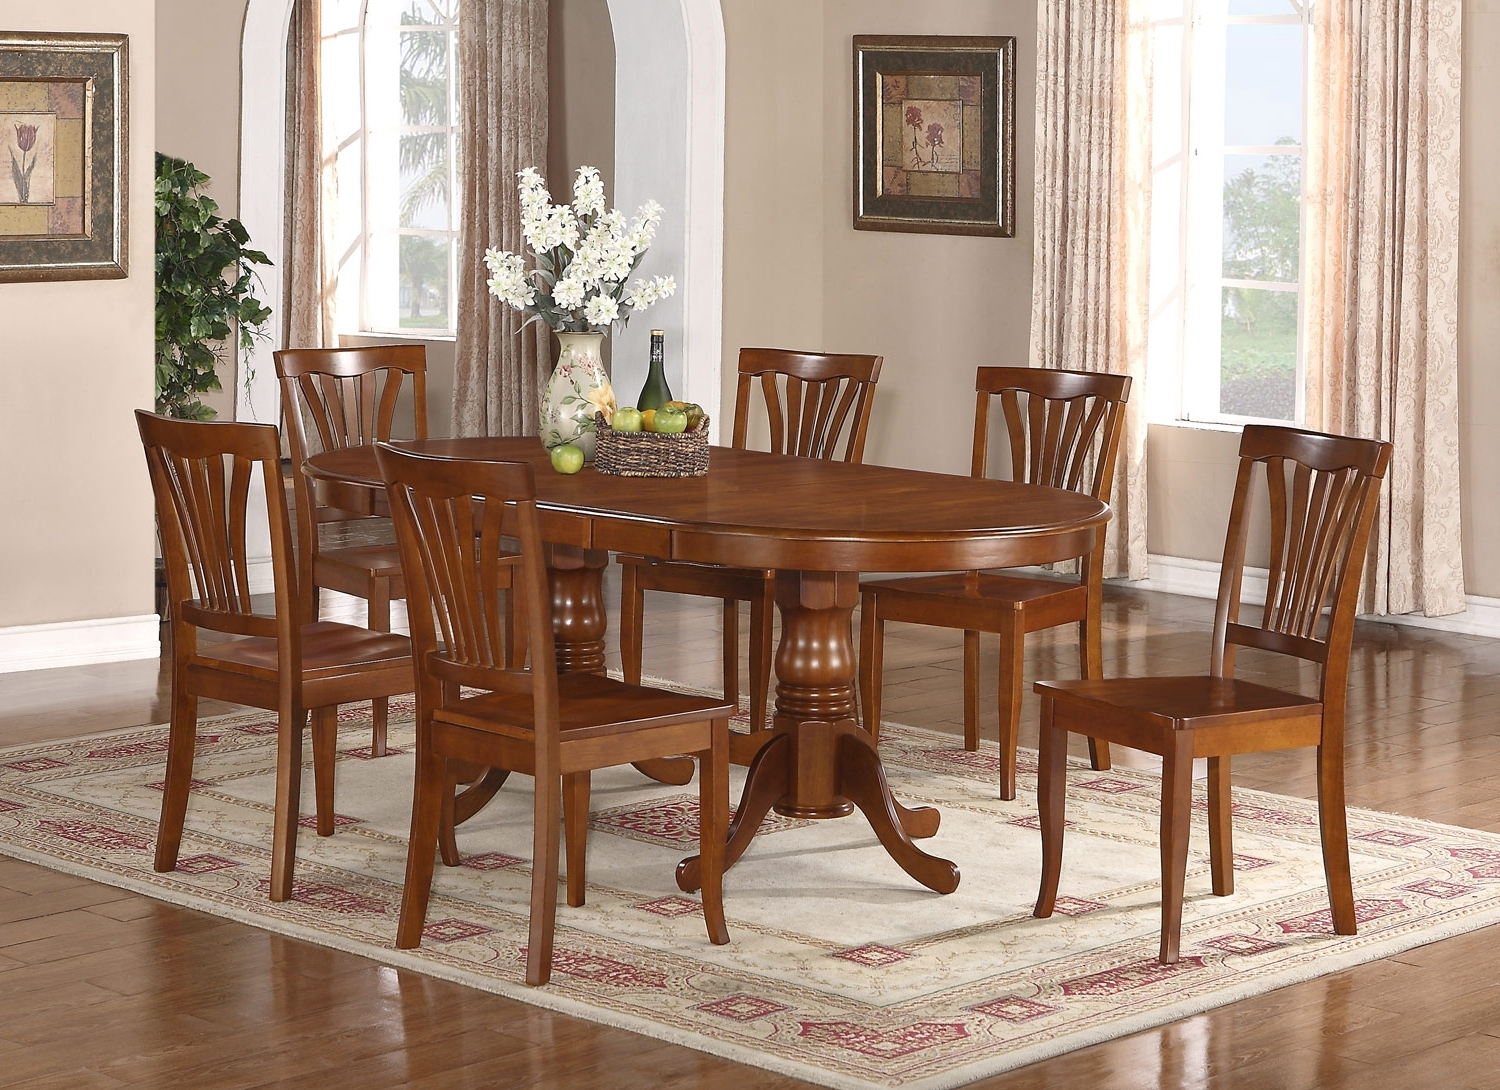 6 Chairs And Dining Tables in Fashionable 7Pc Oval Newton Dining Room Set Extension Leaf Table 6 Chairs 42